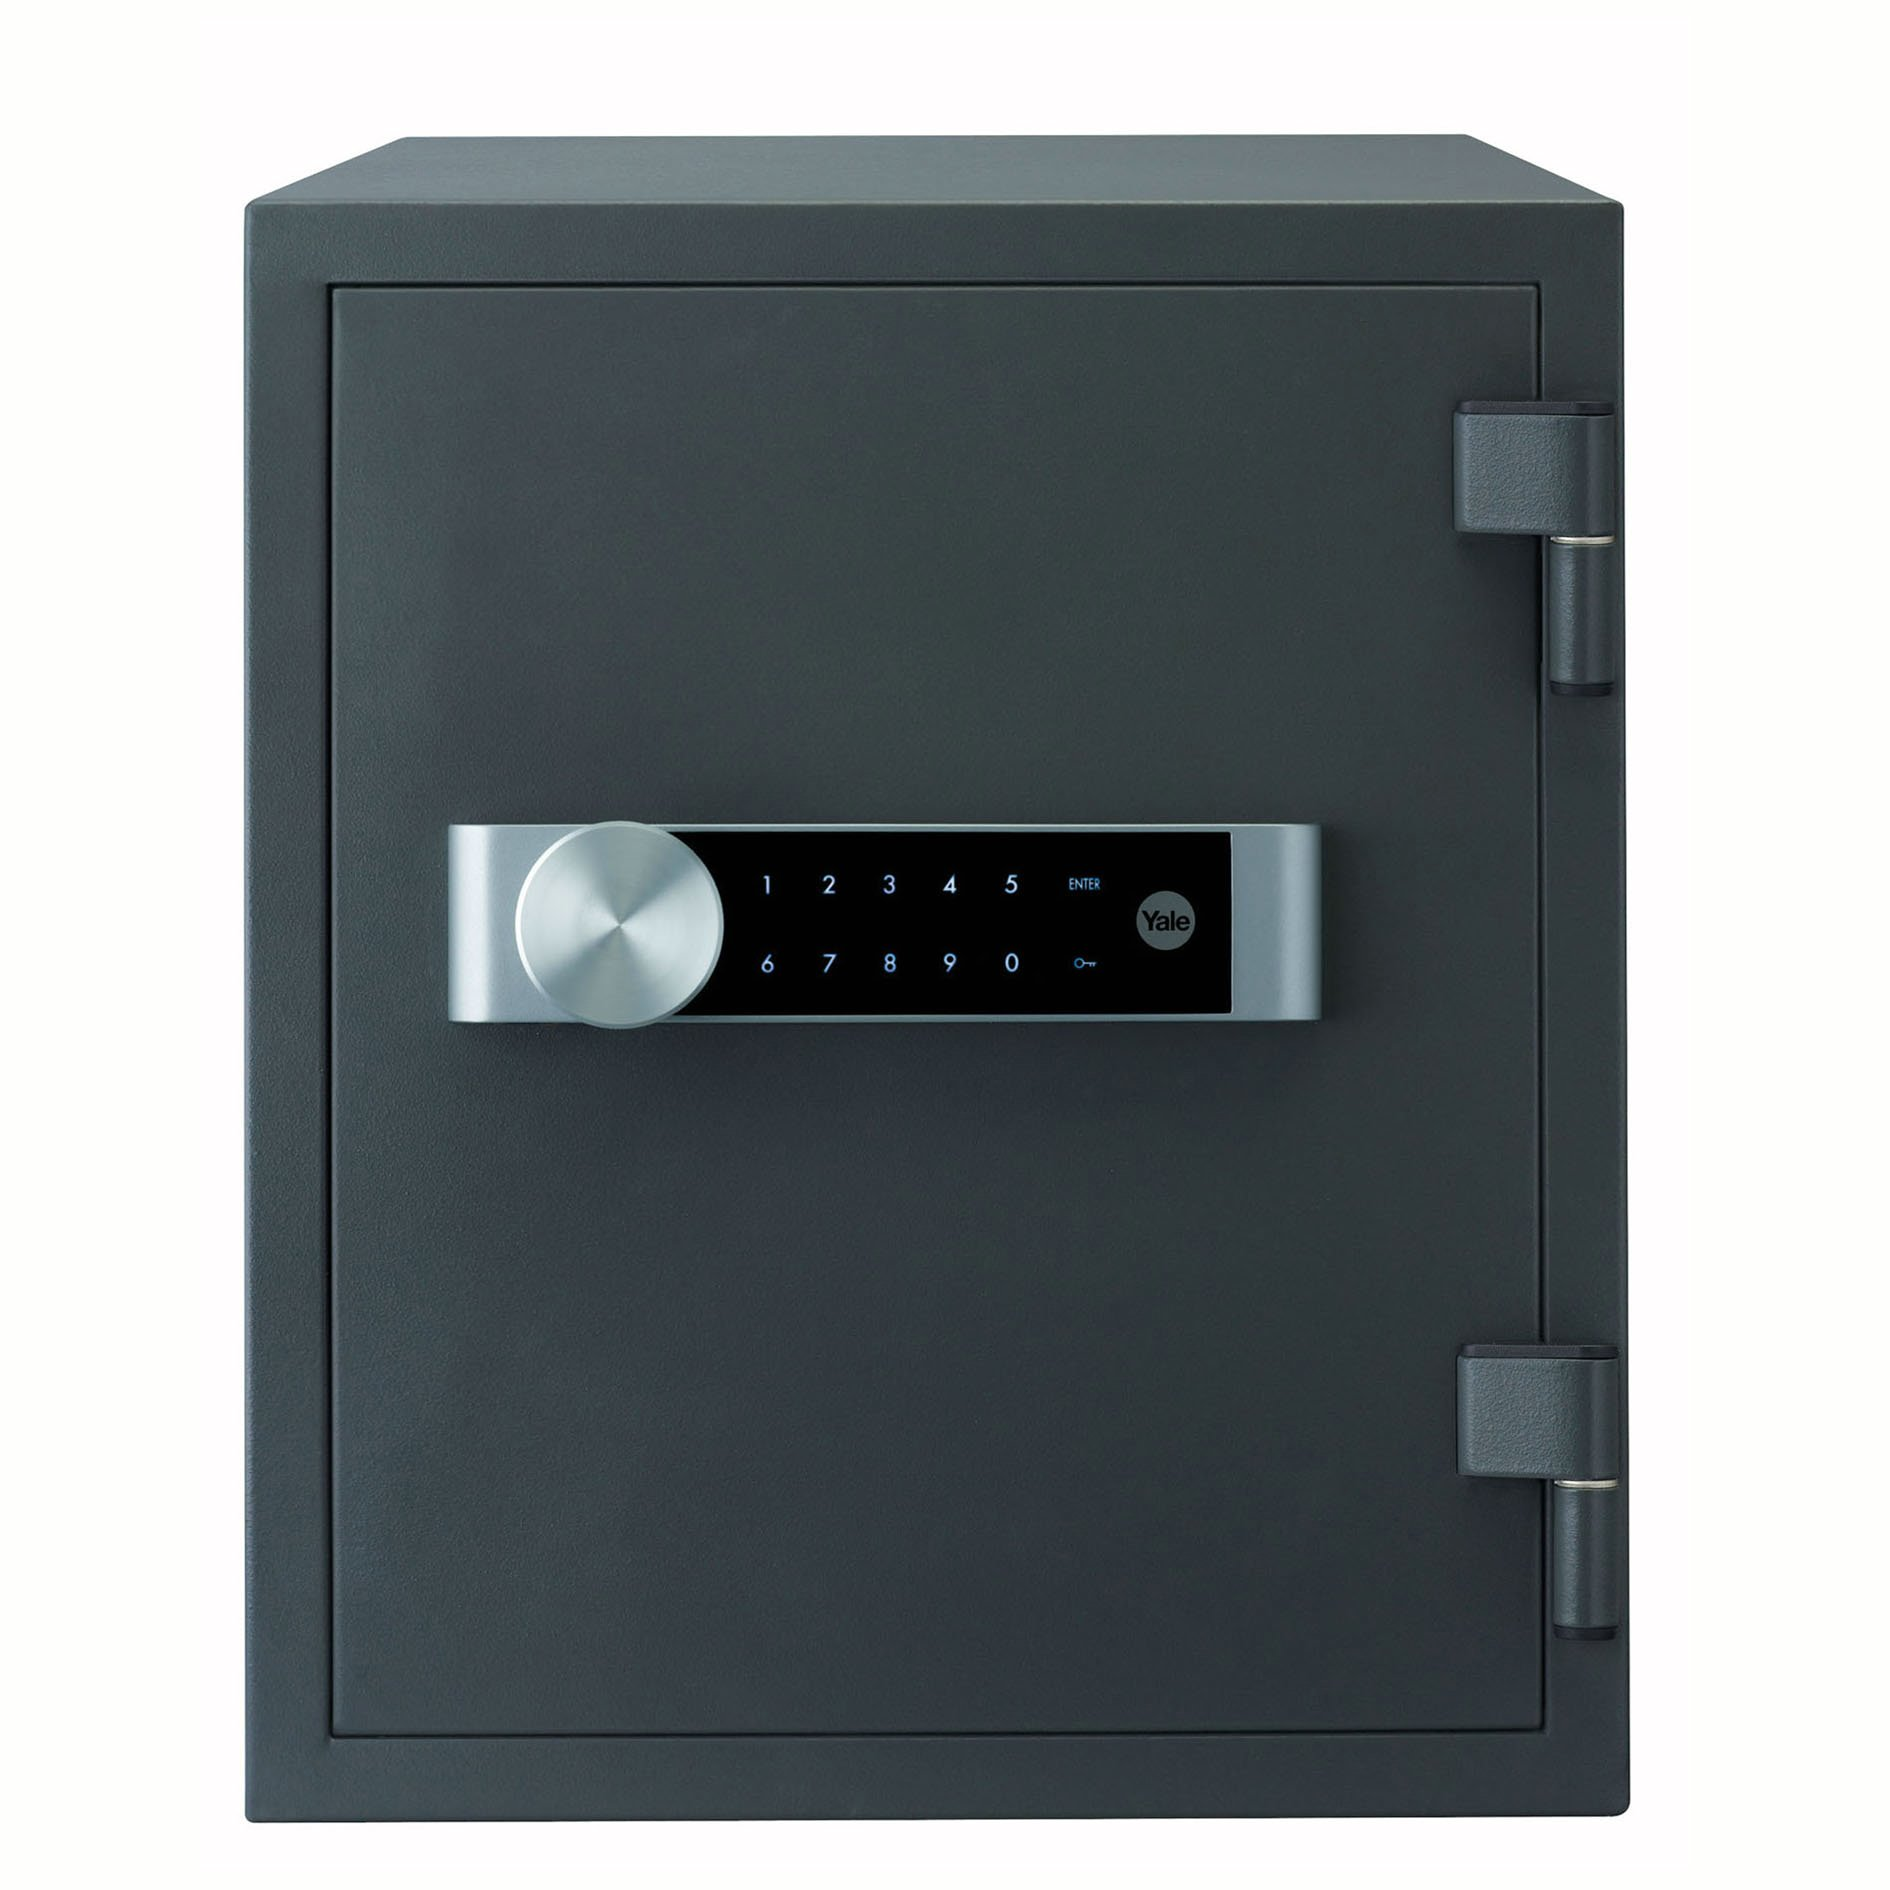 YFM/420/FG2 - Large Document Fire Safe